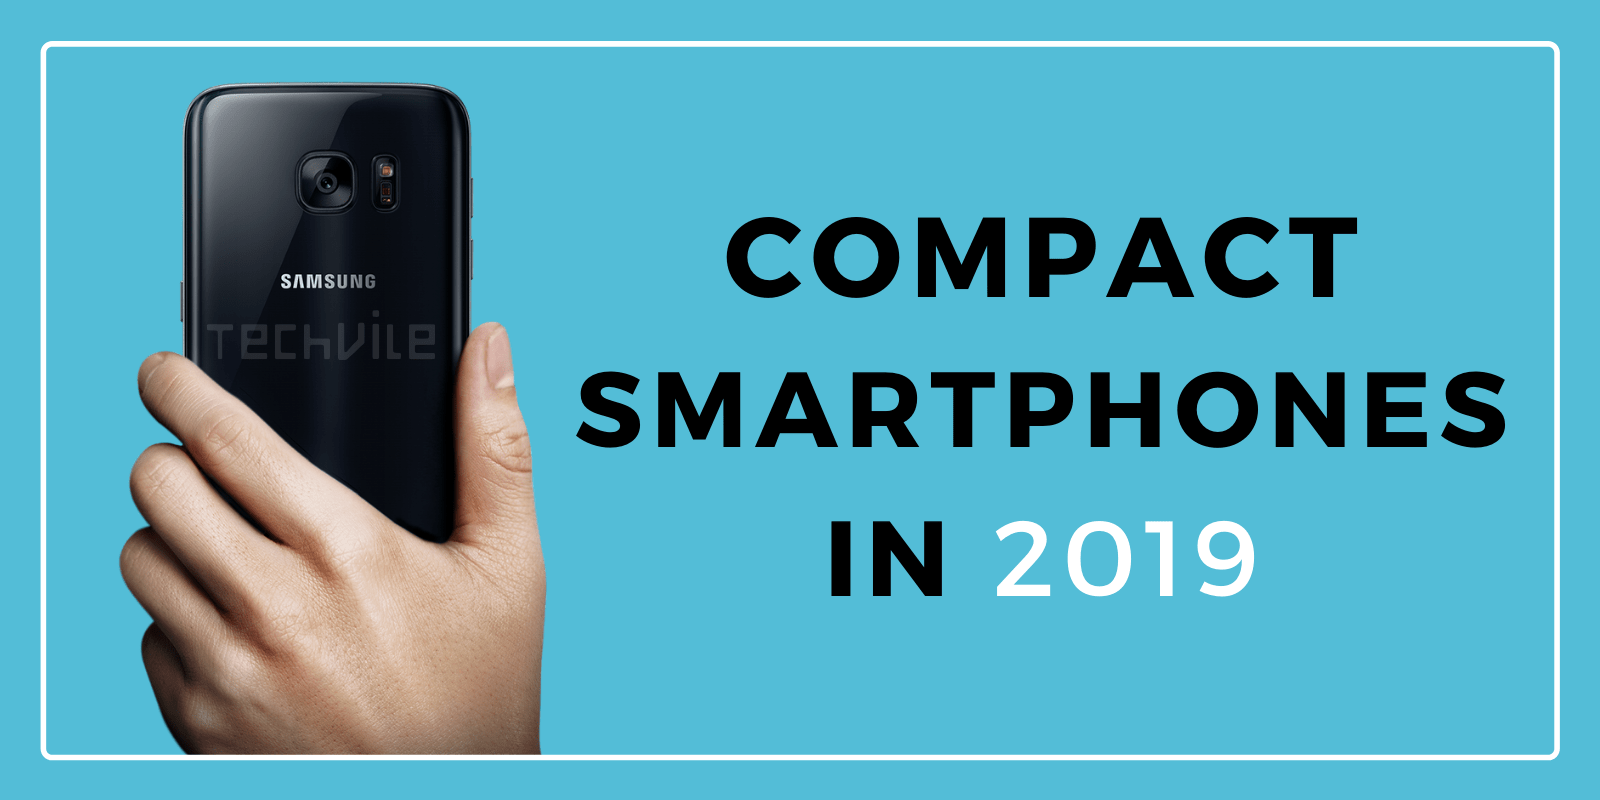 Compact Smartphones that are midsized in November 2019